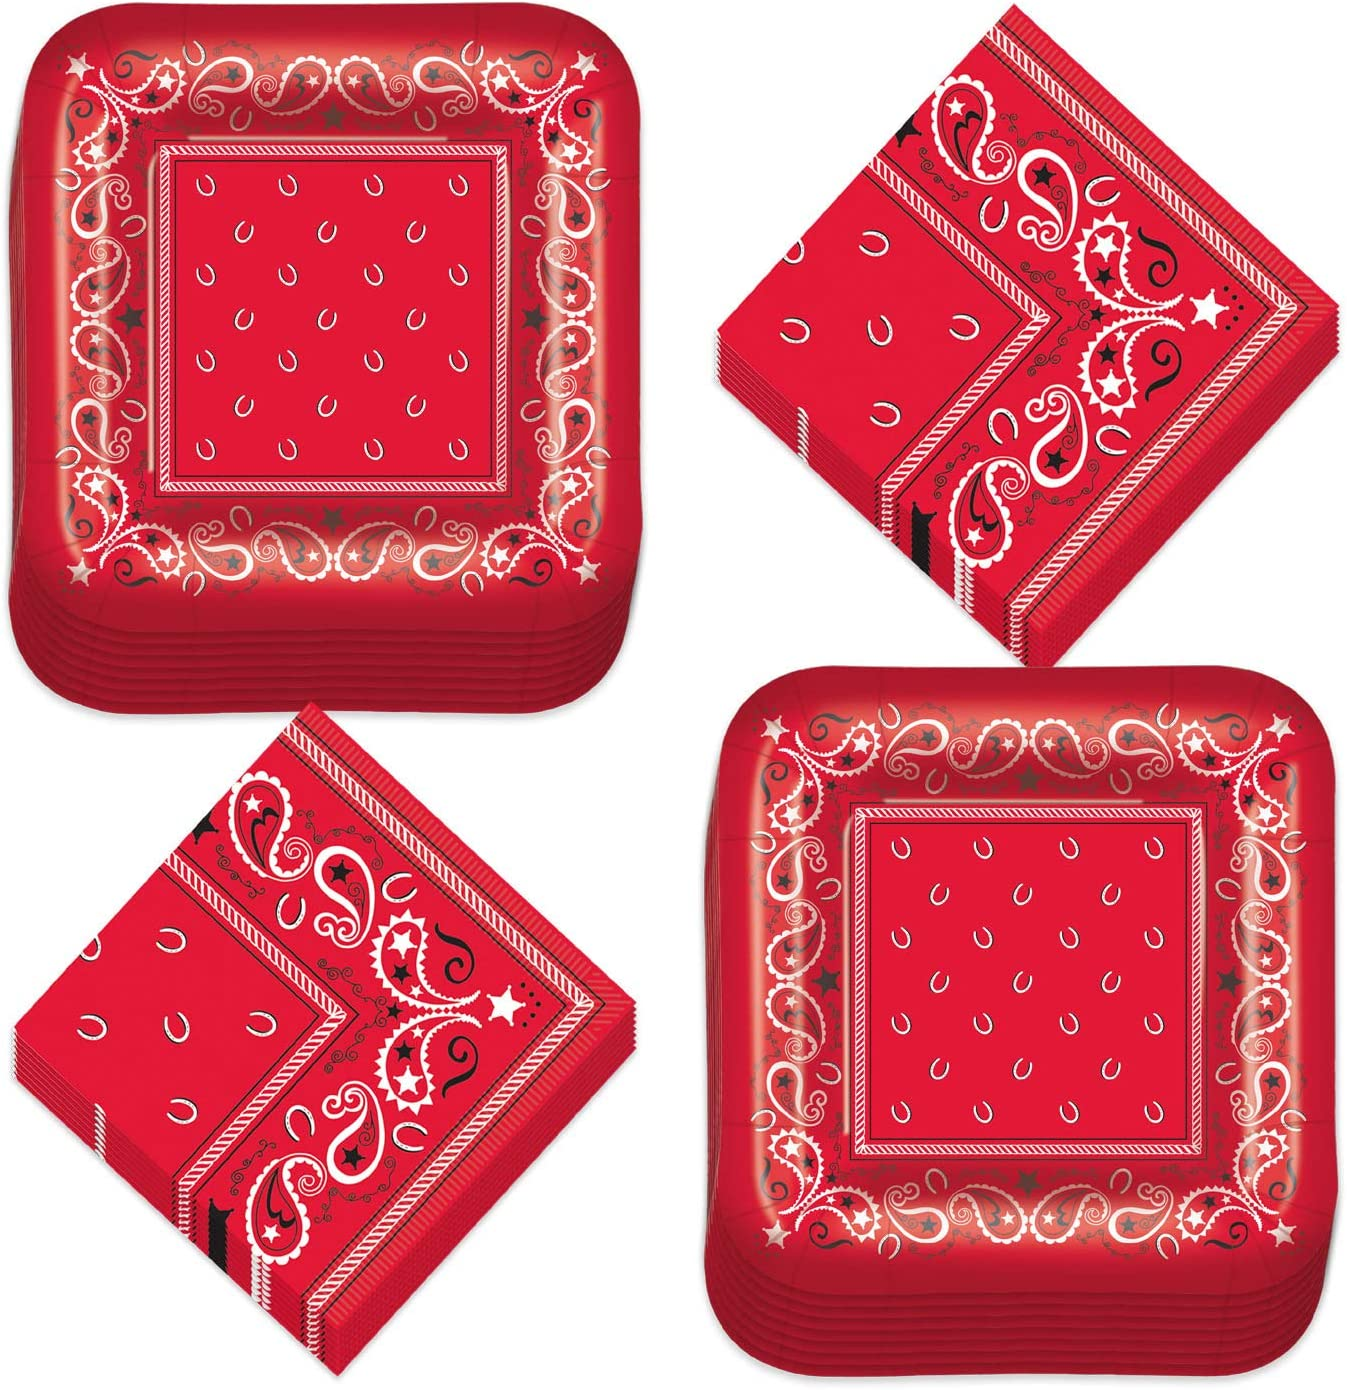 Western Party Supplies - Red Bandana Paper Dessert Plates and Beverage Napkins (Serves 16)